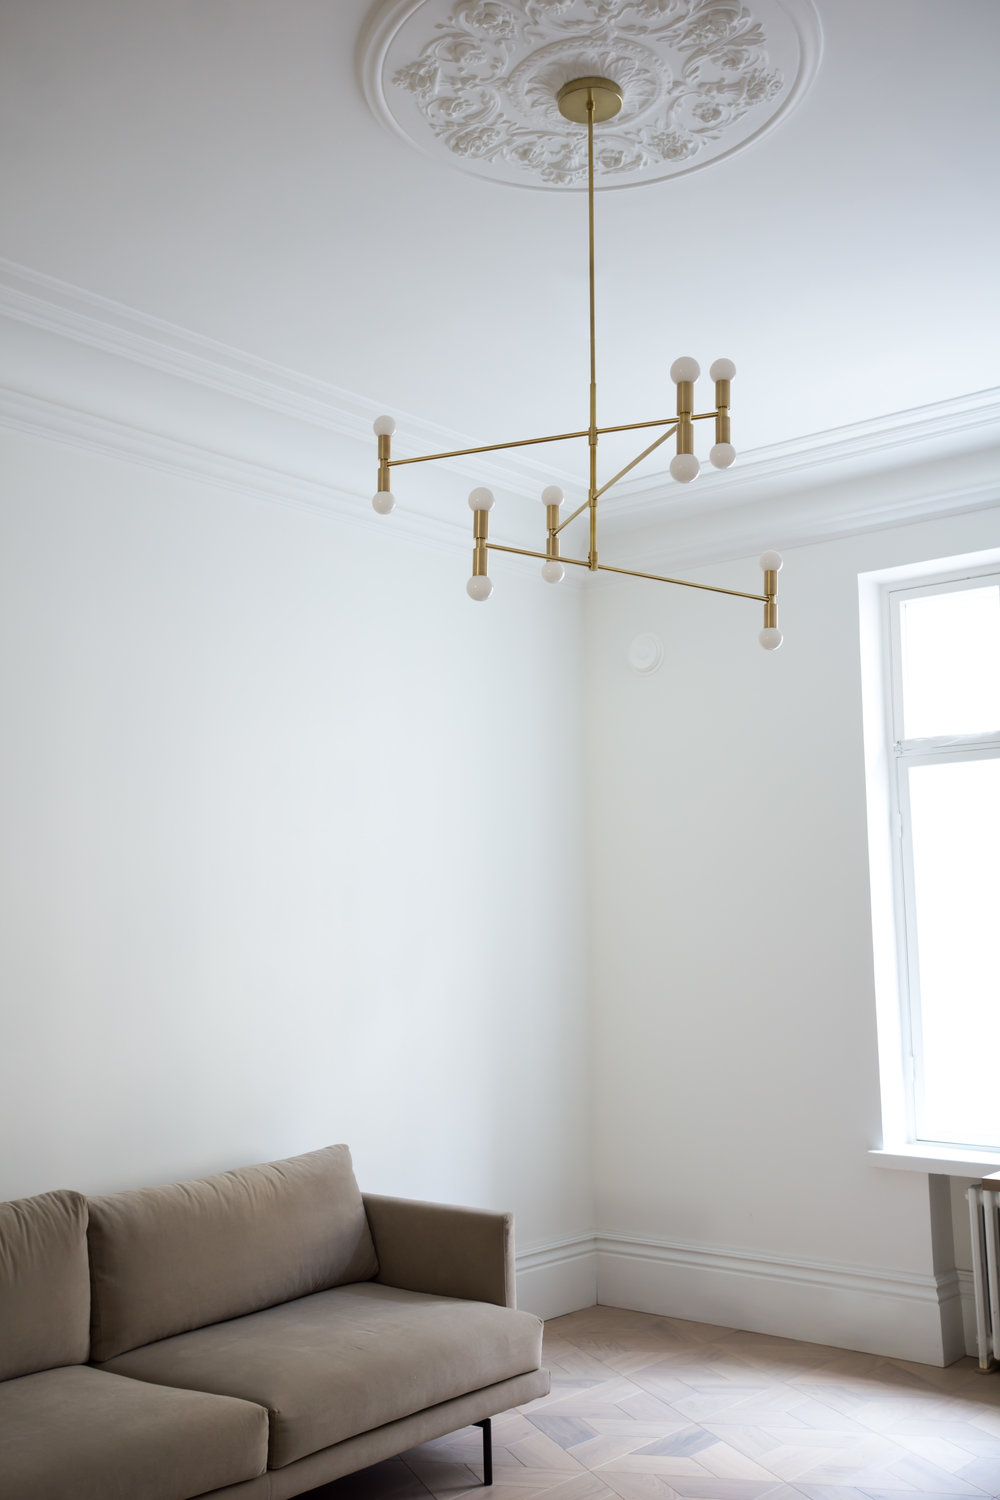 2018128Coterie-LivingroomSuspension-05771.jpg